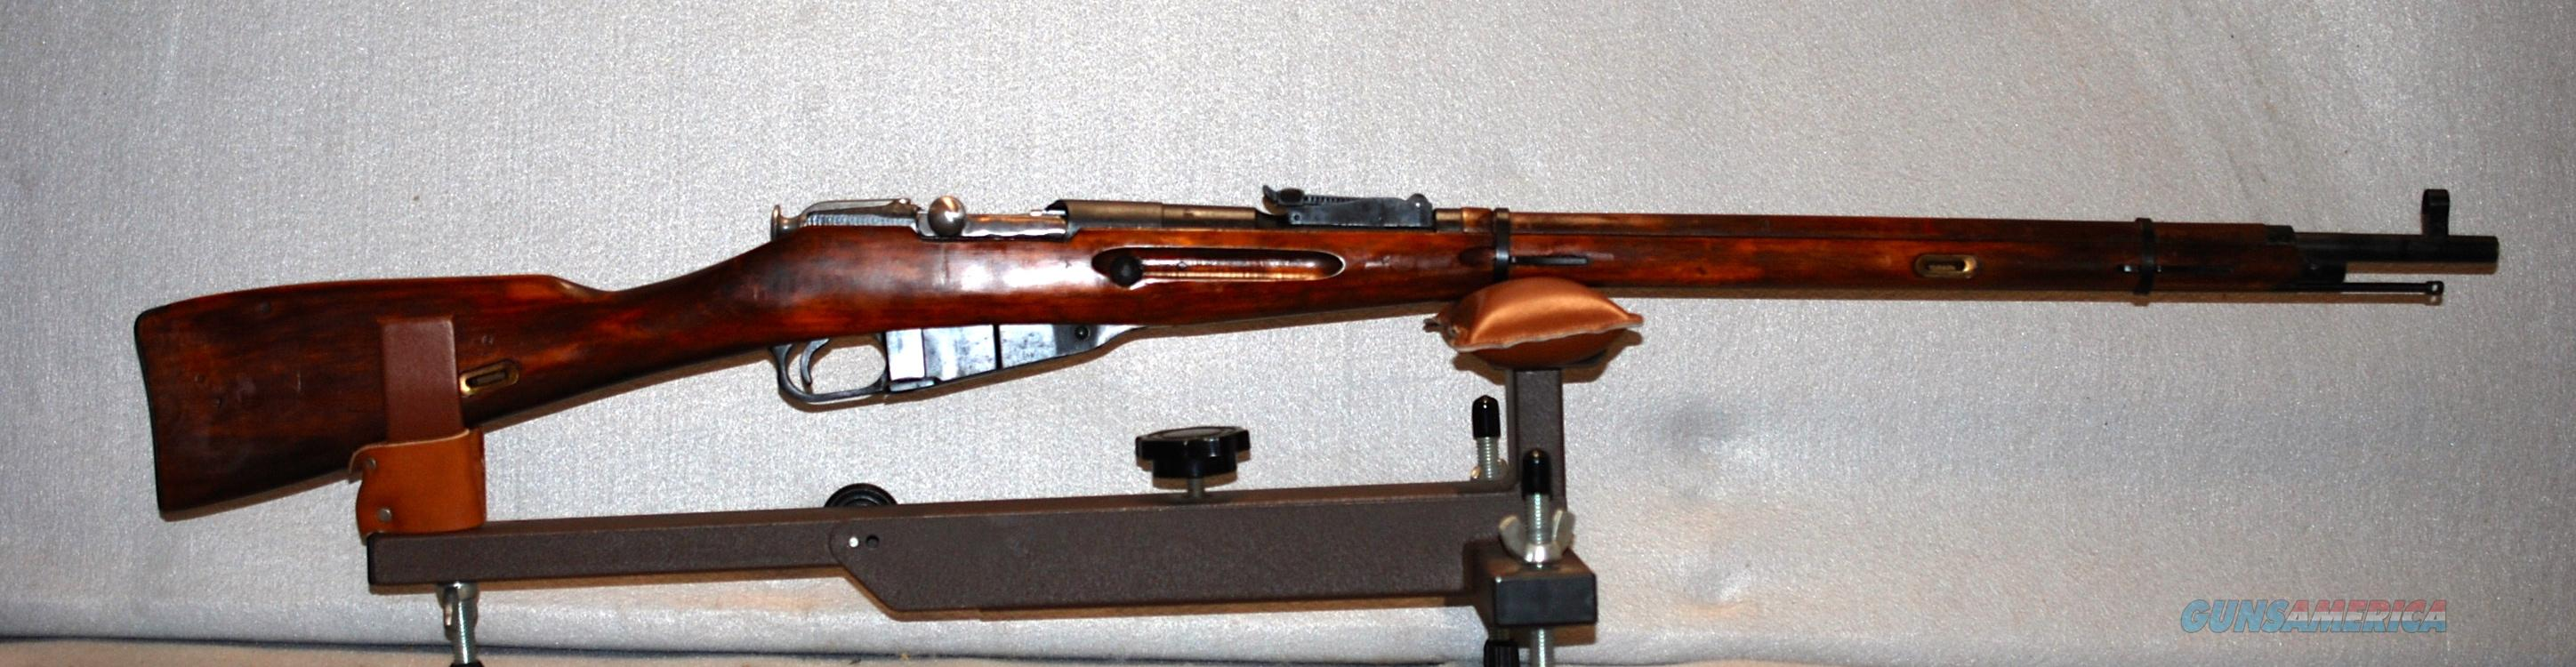 Mosin Nagant 91/30, 1942   Guns > Rifles > Mosin-Nagant Rifles/Carbines